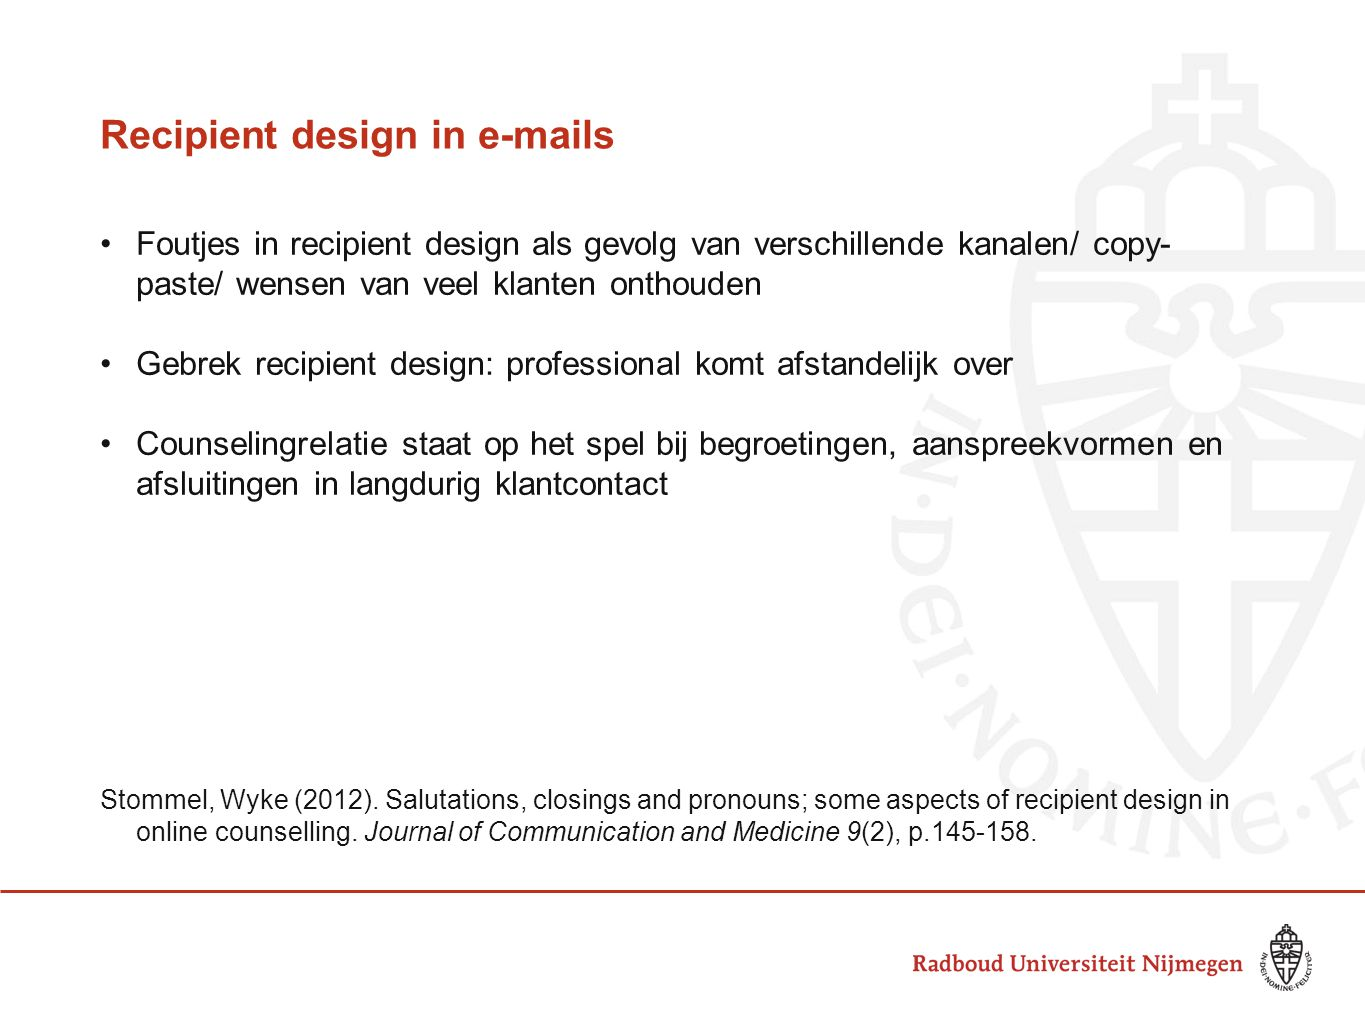 Recipient design in e-mails